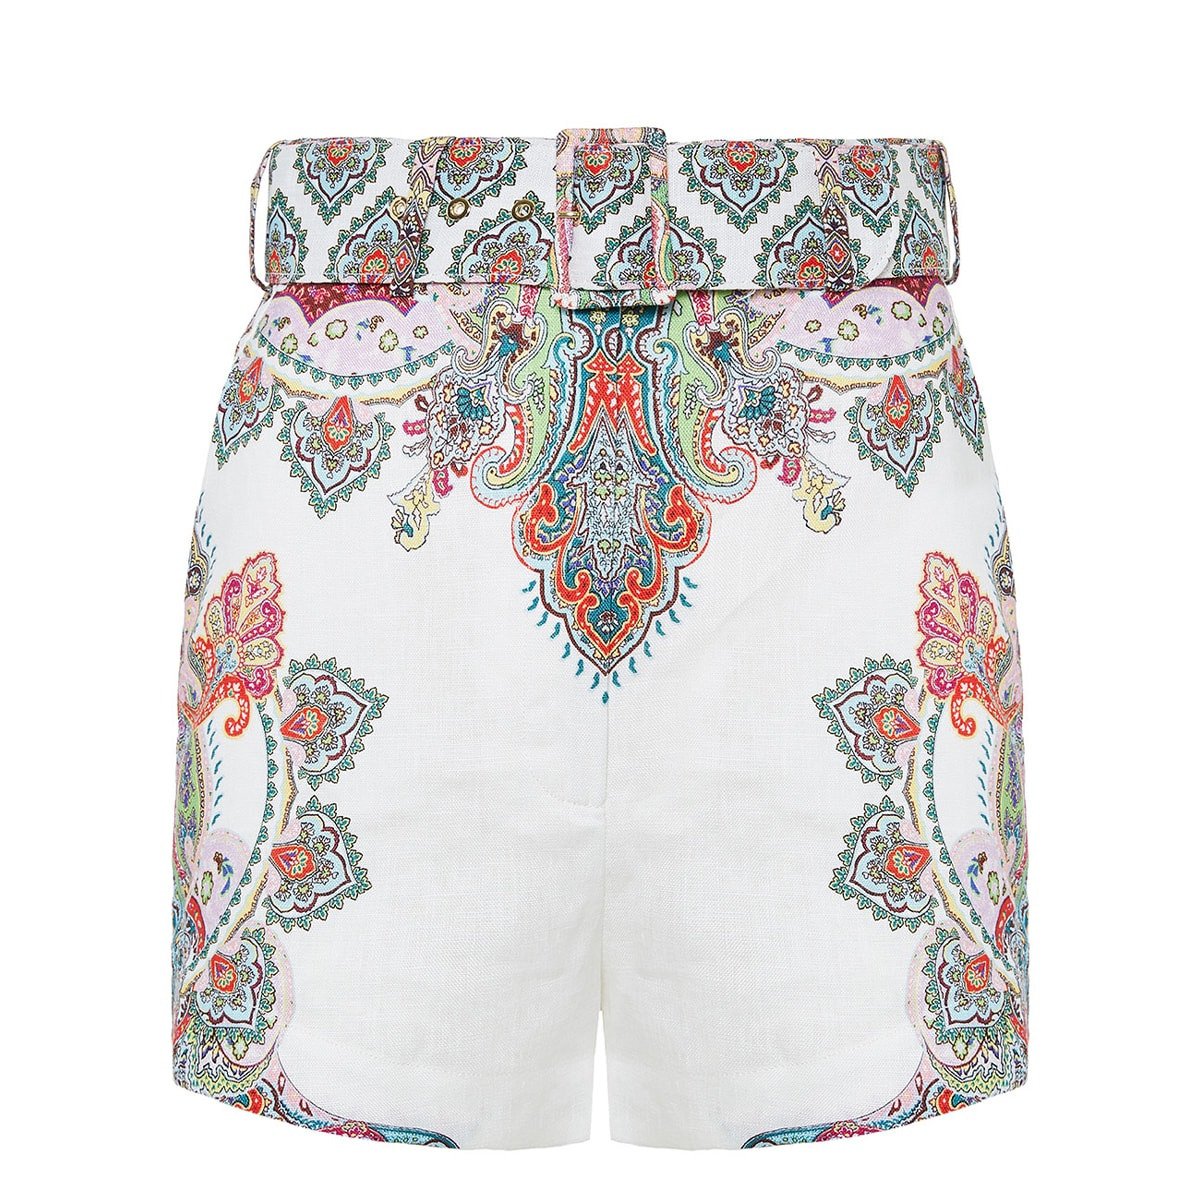 Ninety-Six printed linen shorts